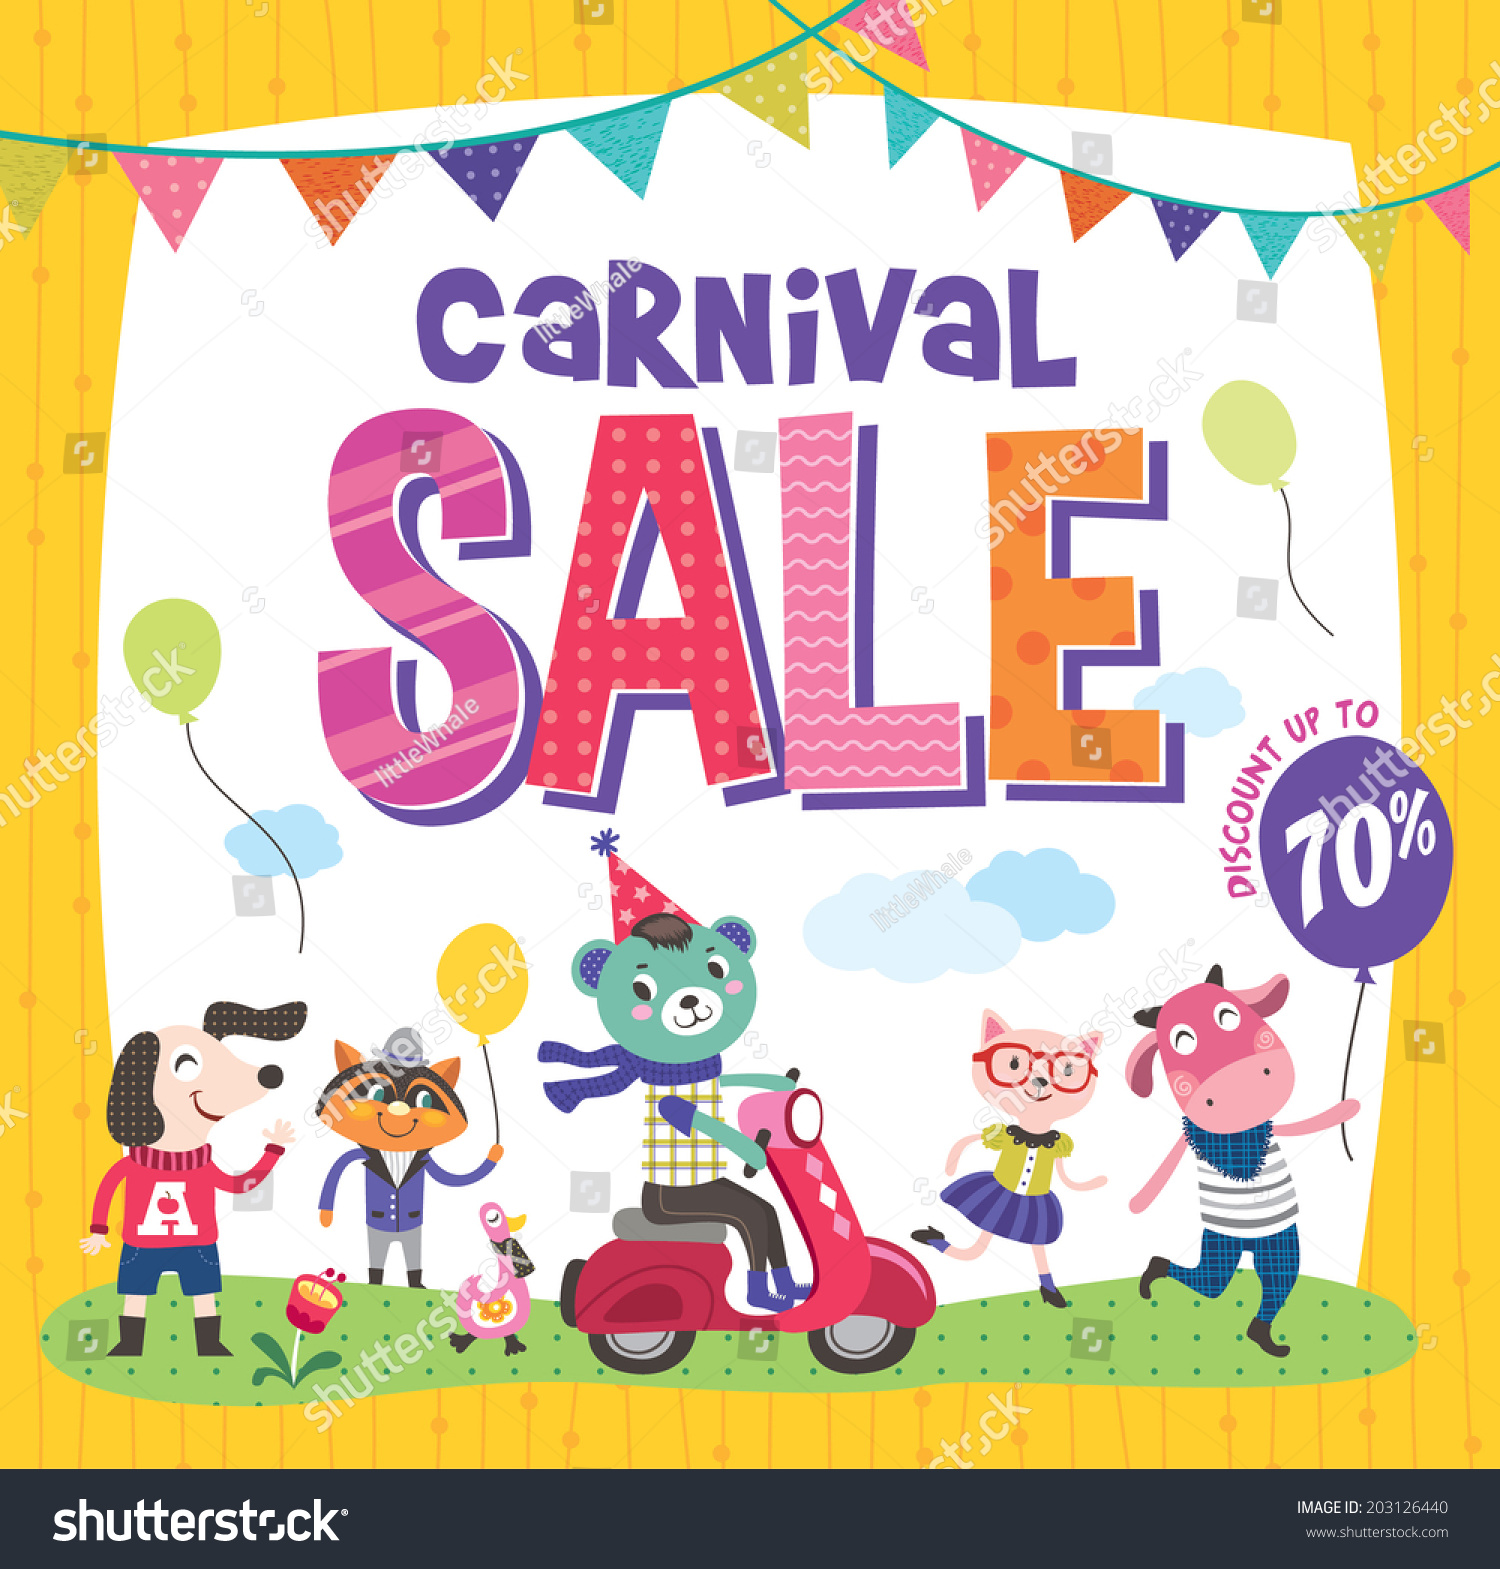 Carnival Sale >> Carnival Sale Poster Cute Animals Stock Vector 203126440